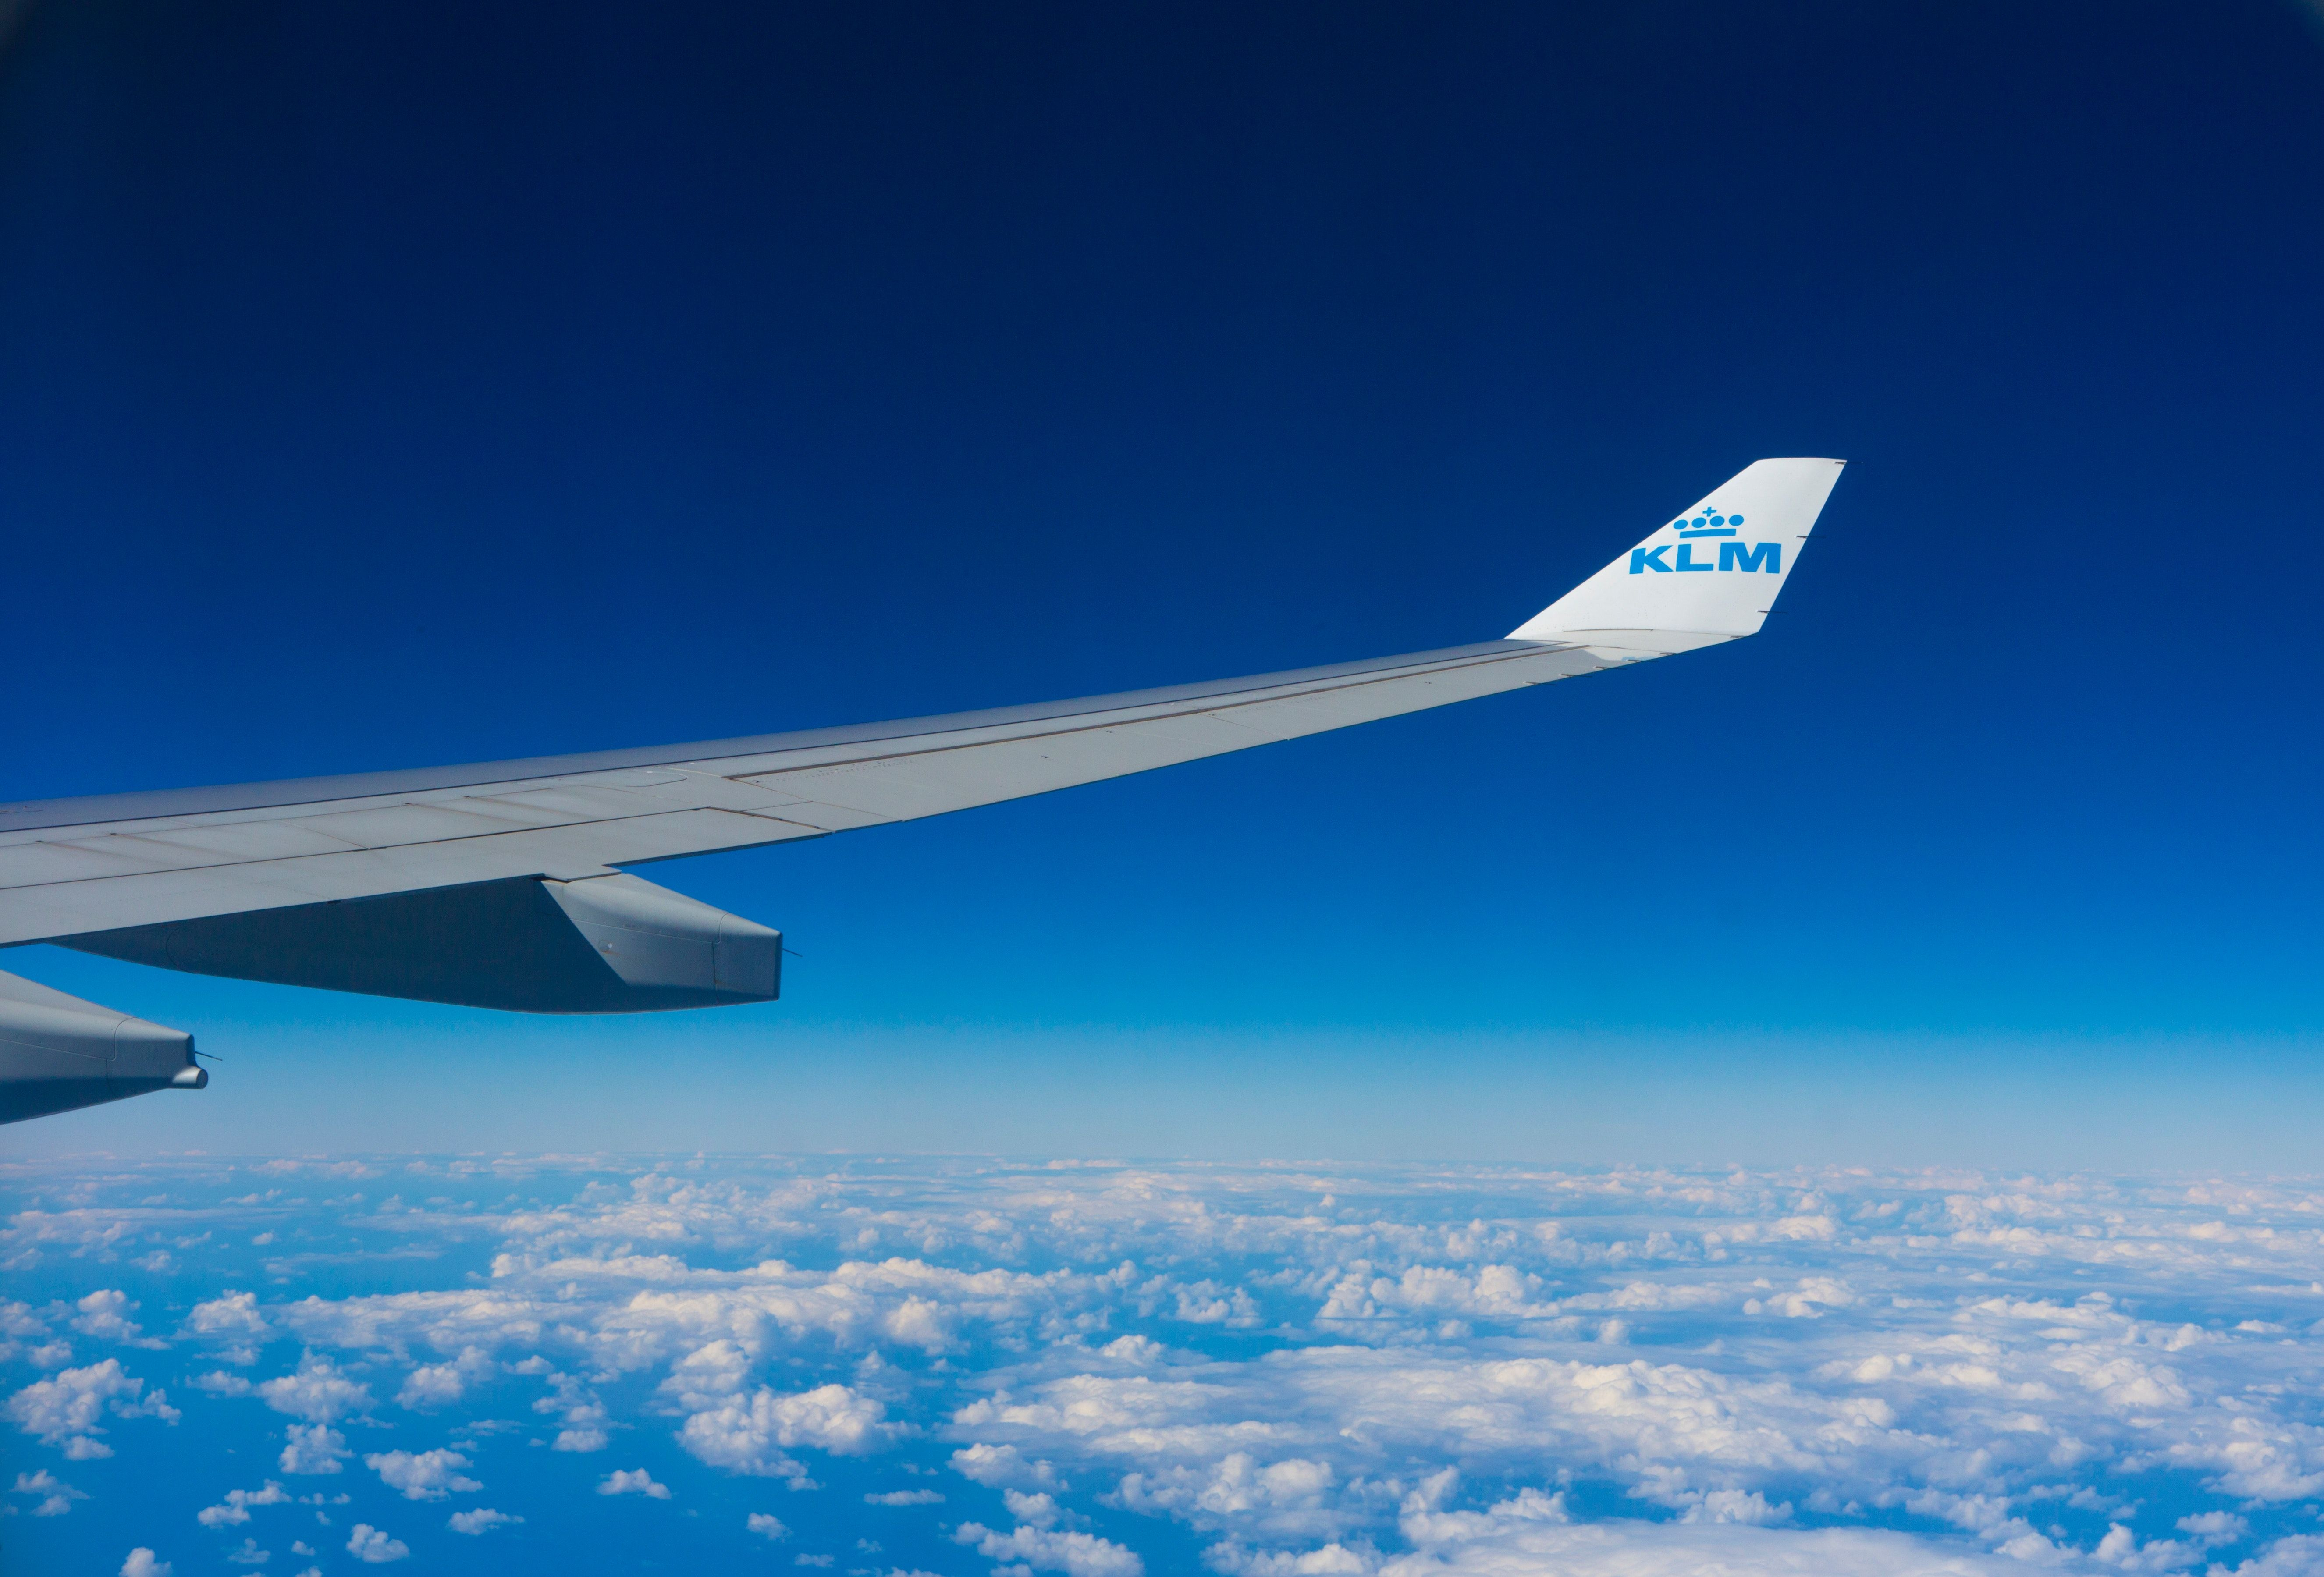 5302x3598 Photo of White and Blue Klm Plane · Free Stock Photo